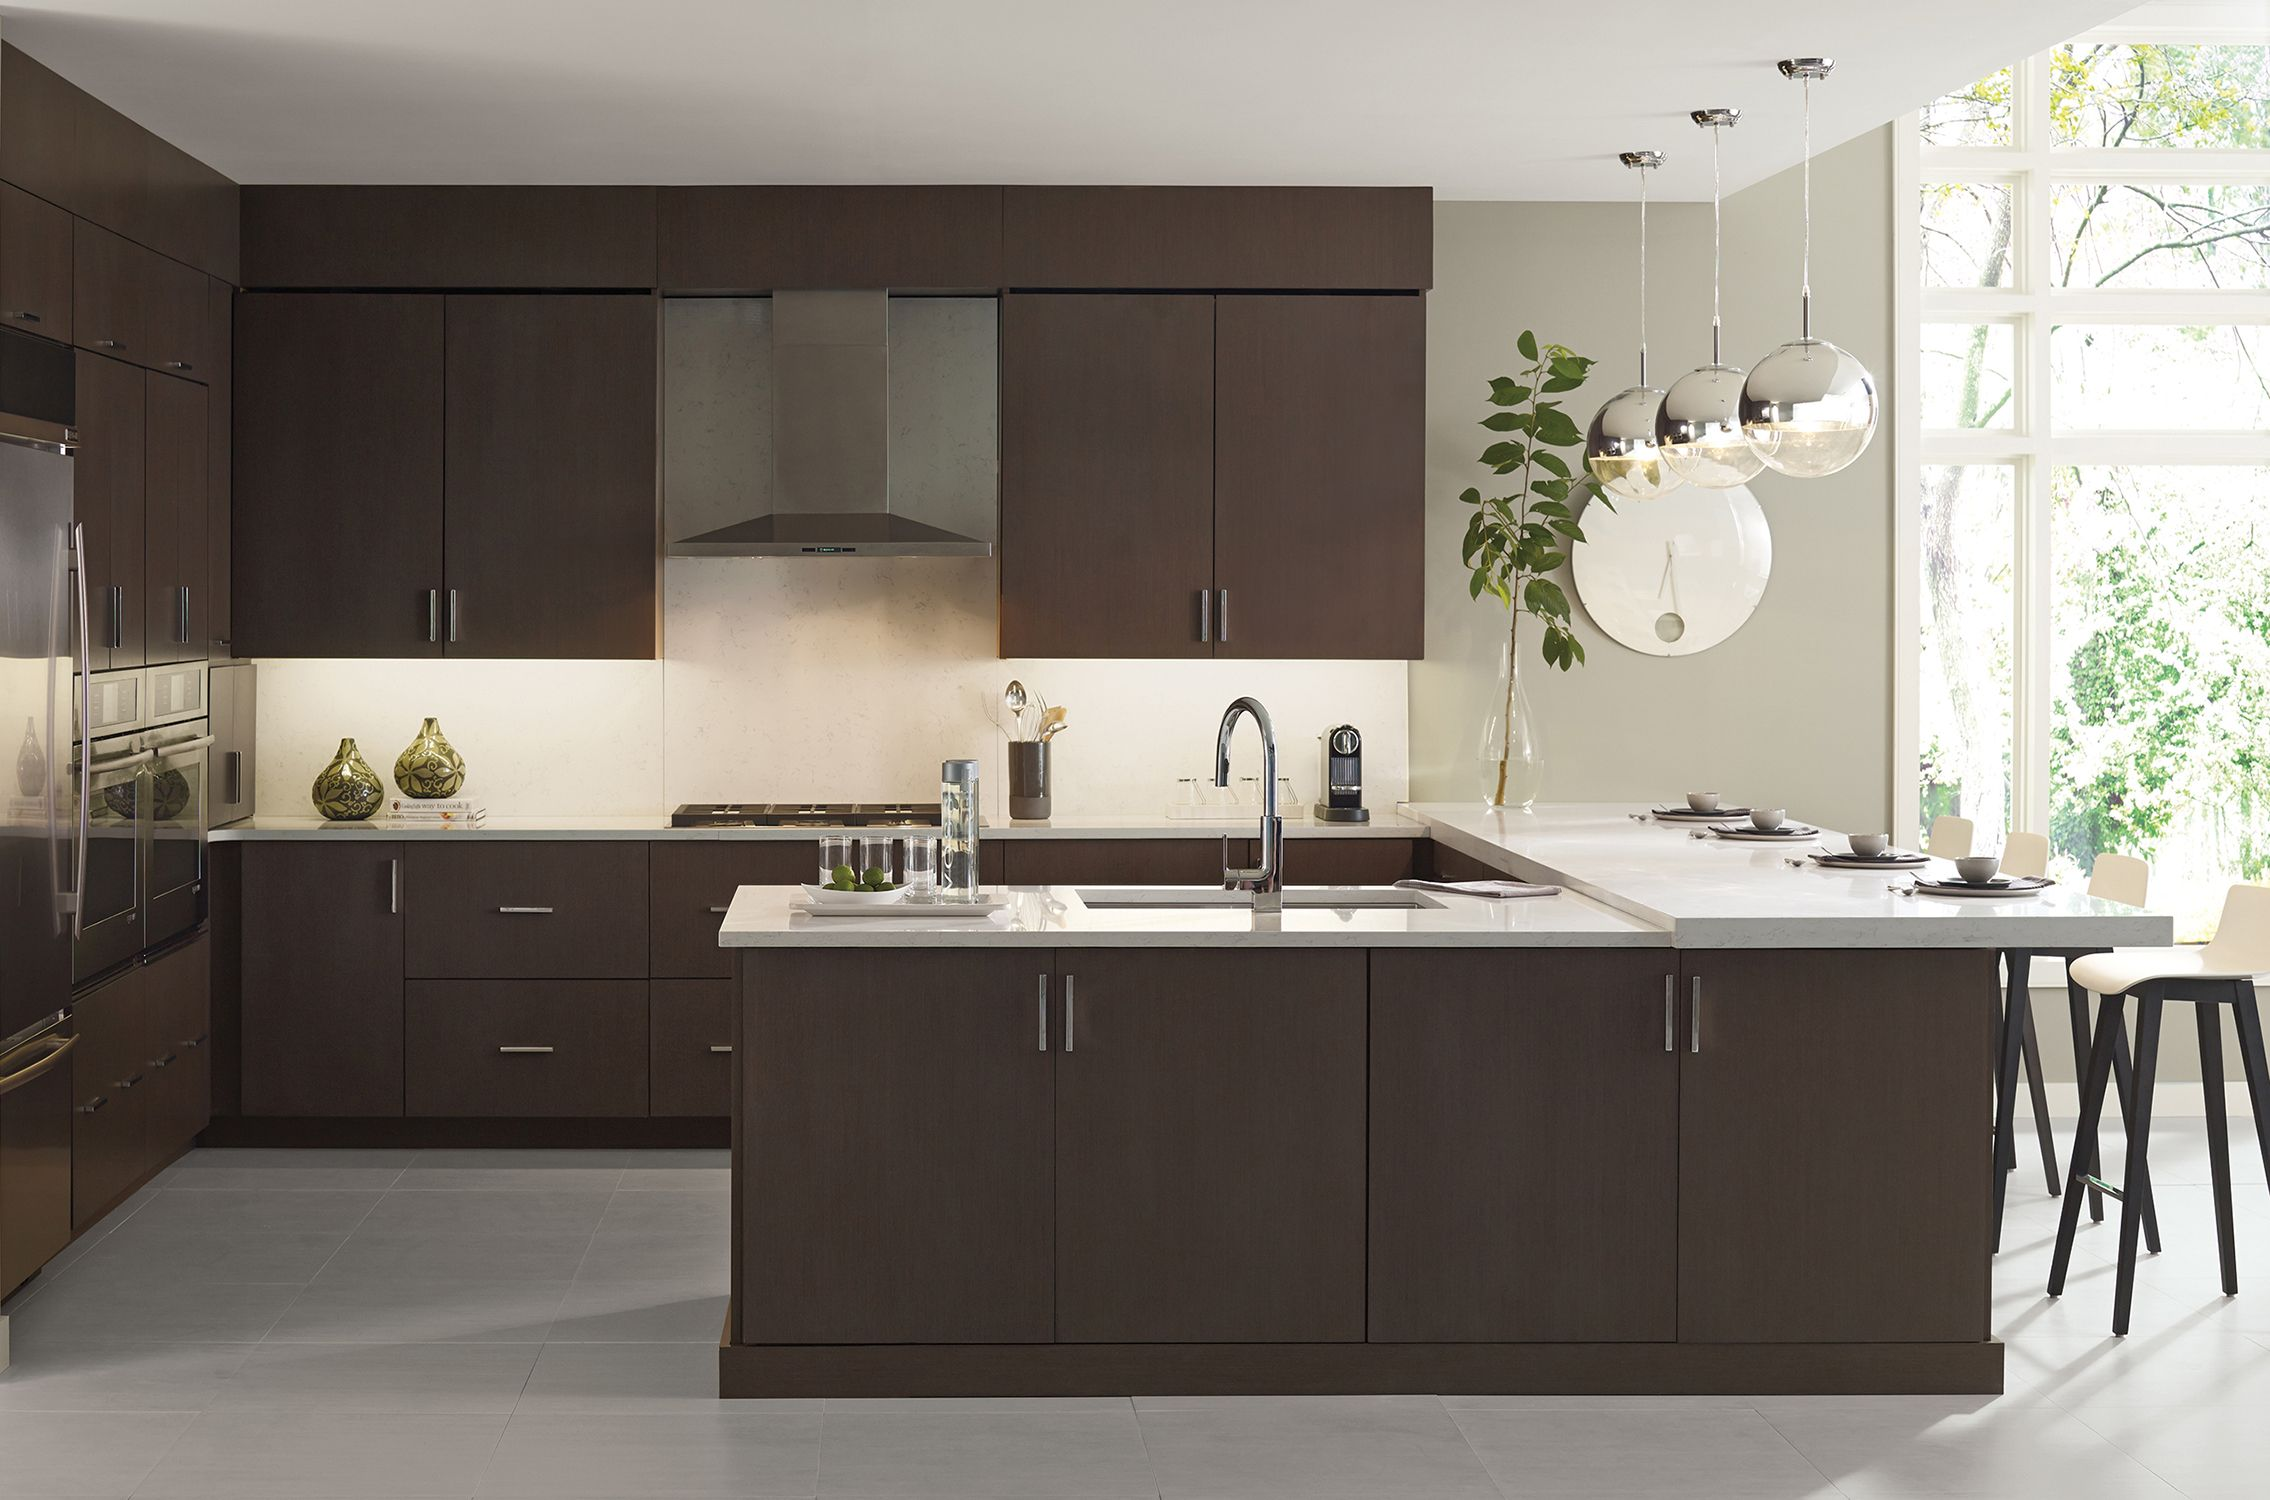 Bring in your kitchen floor plans and a helpful directbuy associate bring in your kitchen floor plans and a helpful directbuy associate can help you handpick solutioingenieria Gallery